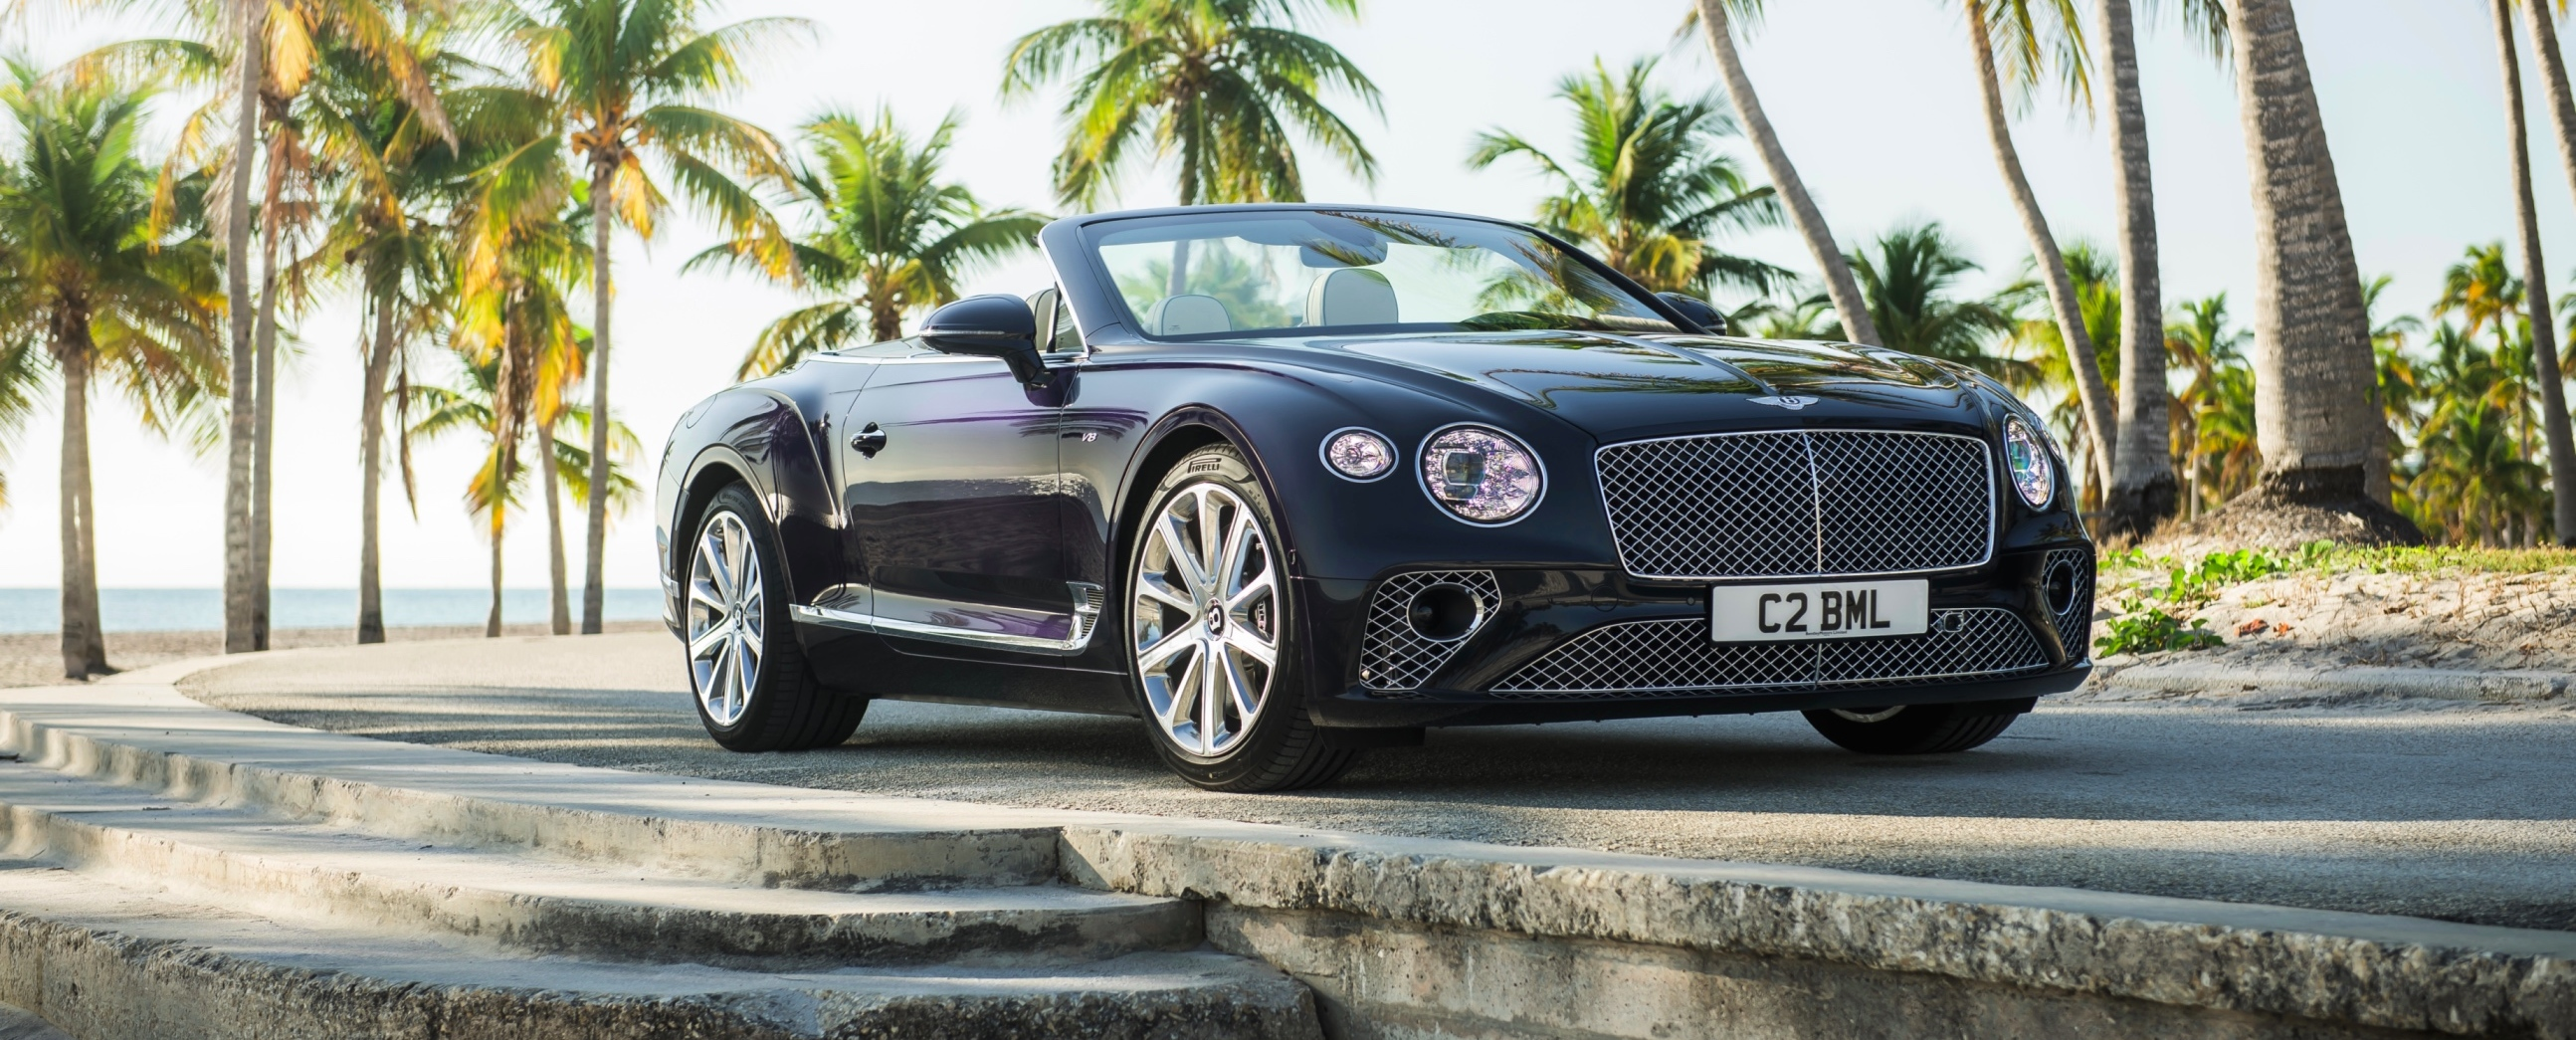 2020 Bentley Continental GT Convertible for Sale in Northbrook, IL